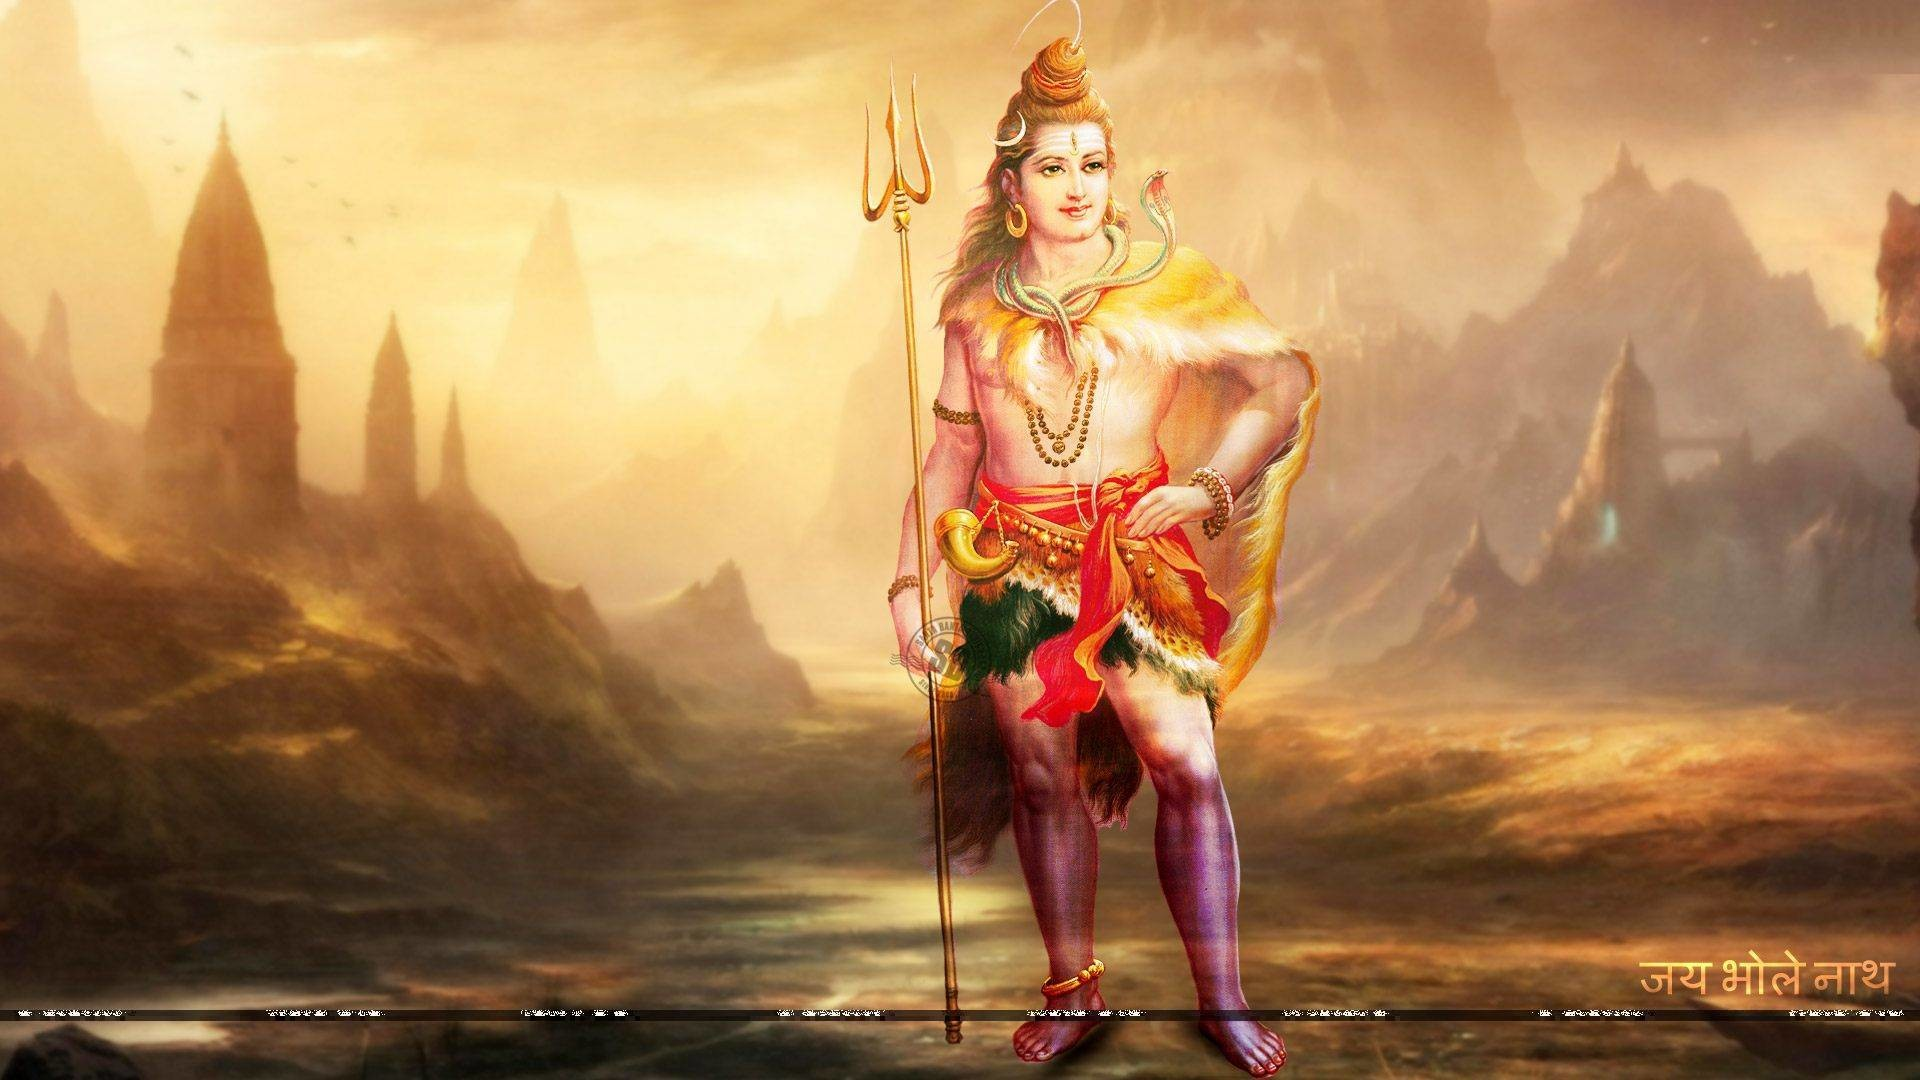 Shiva Animated Wallpaper Hd Shiv Photo Wallpapers 66 Images